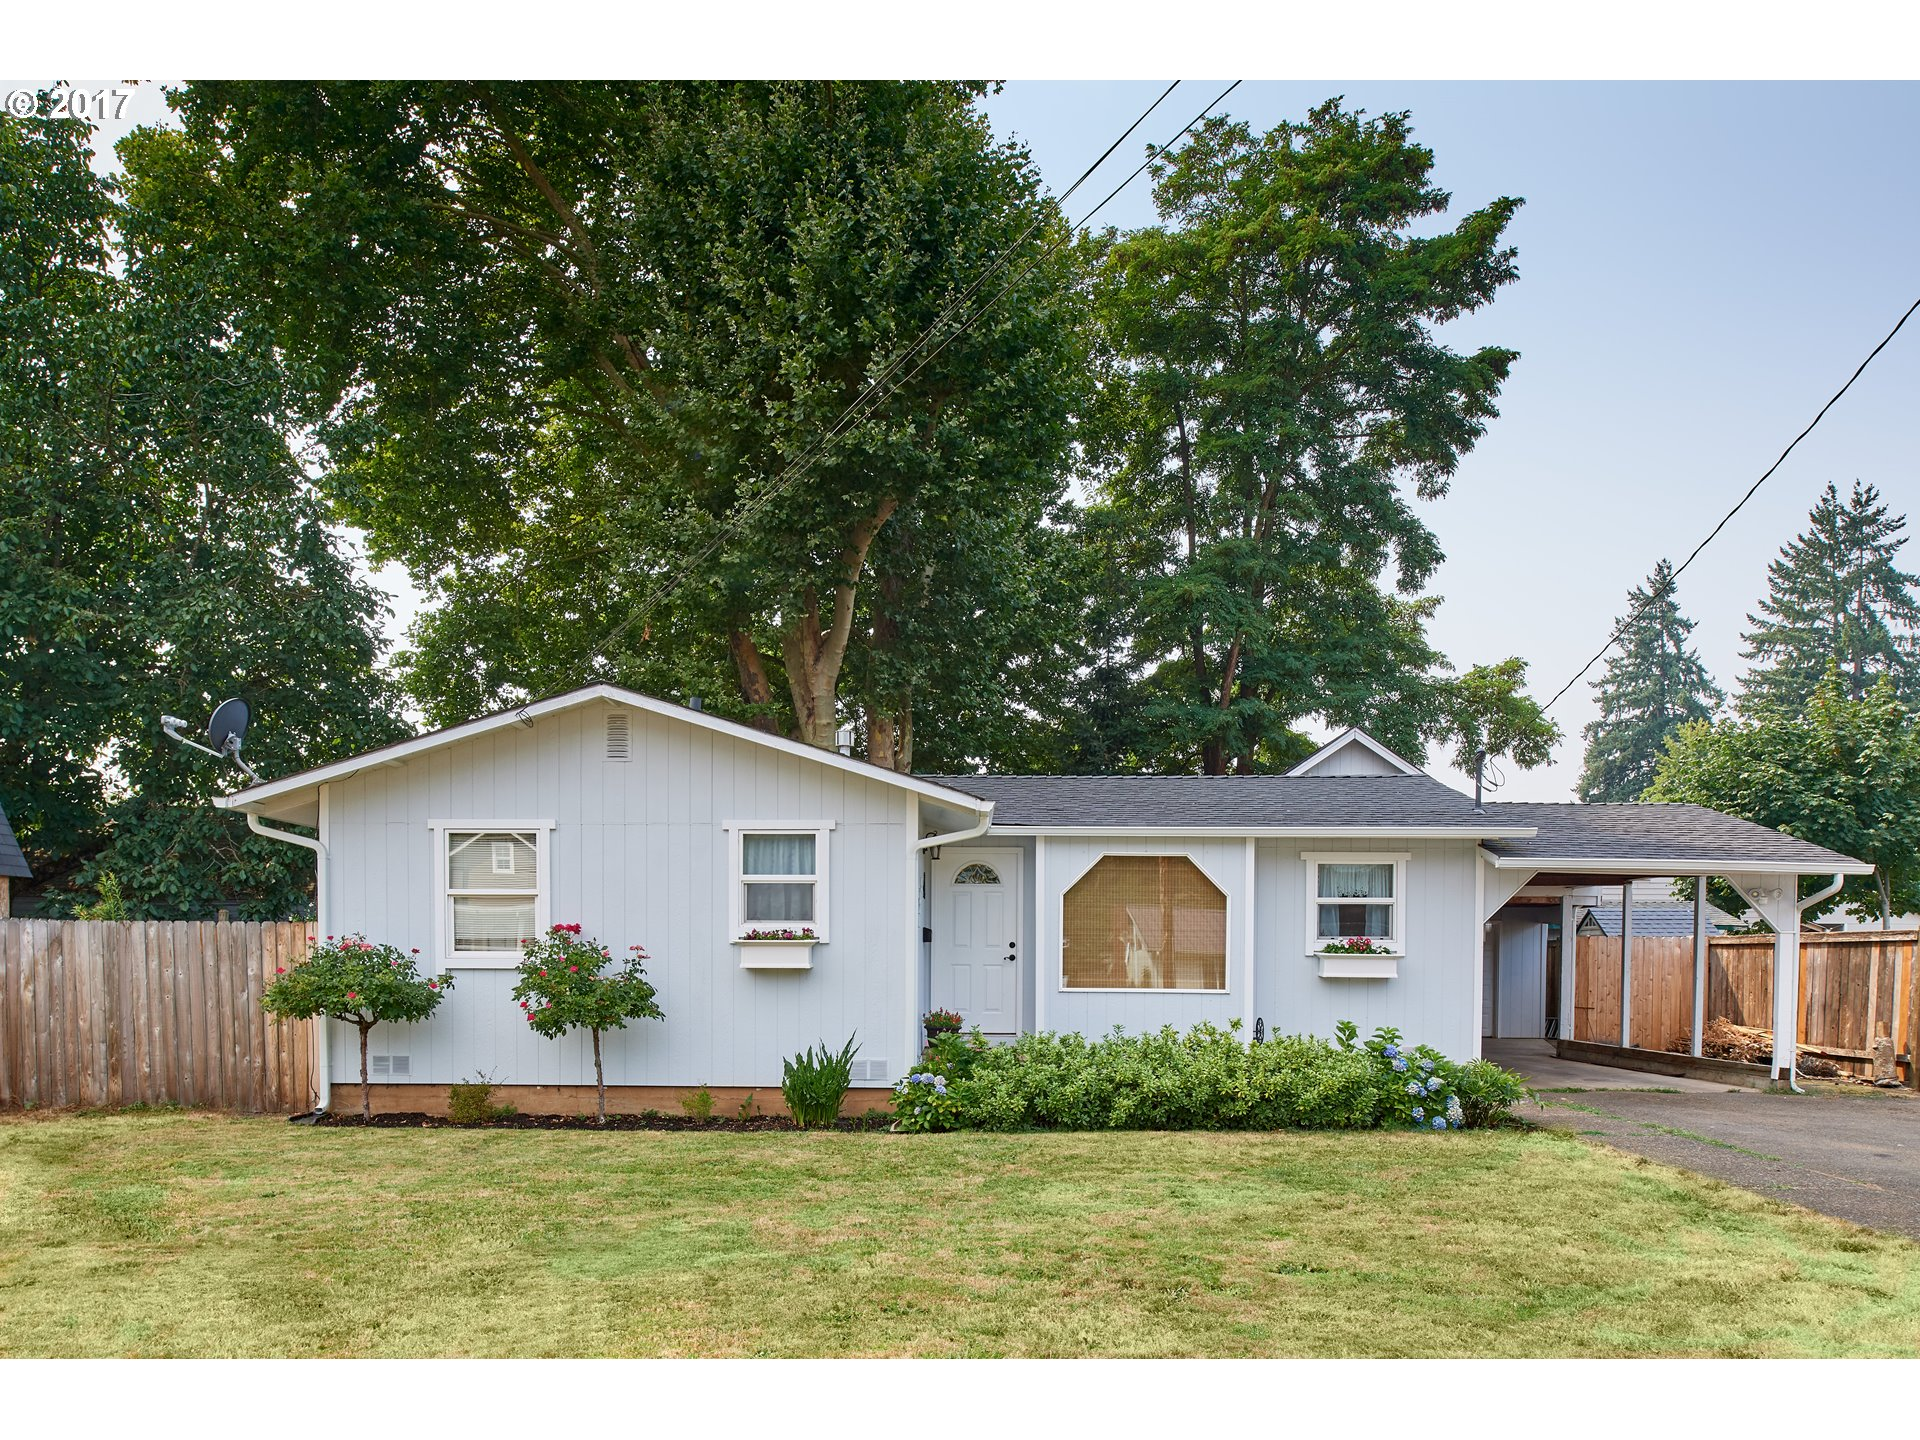 1215 S 7TH ST, Cottage Grove, OR 97424